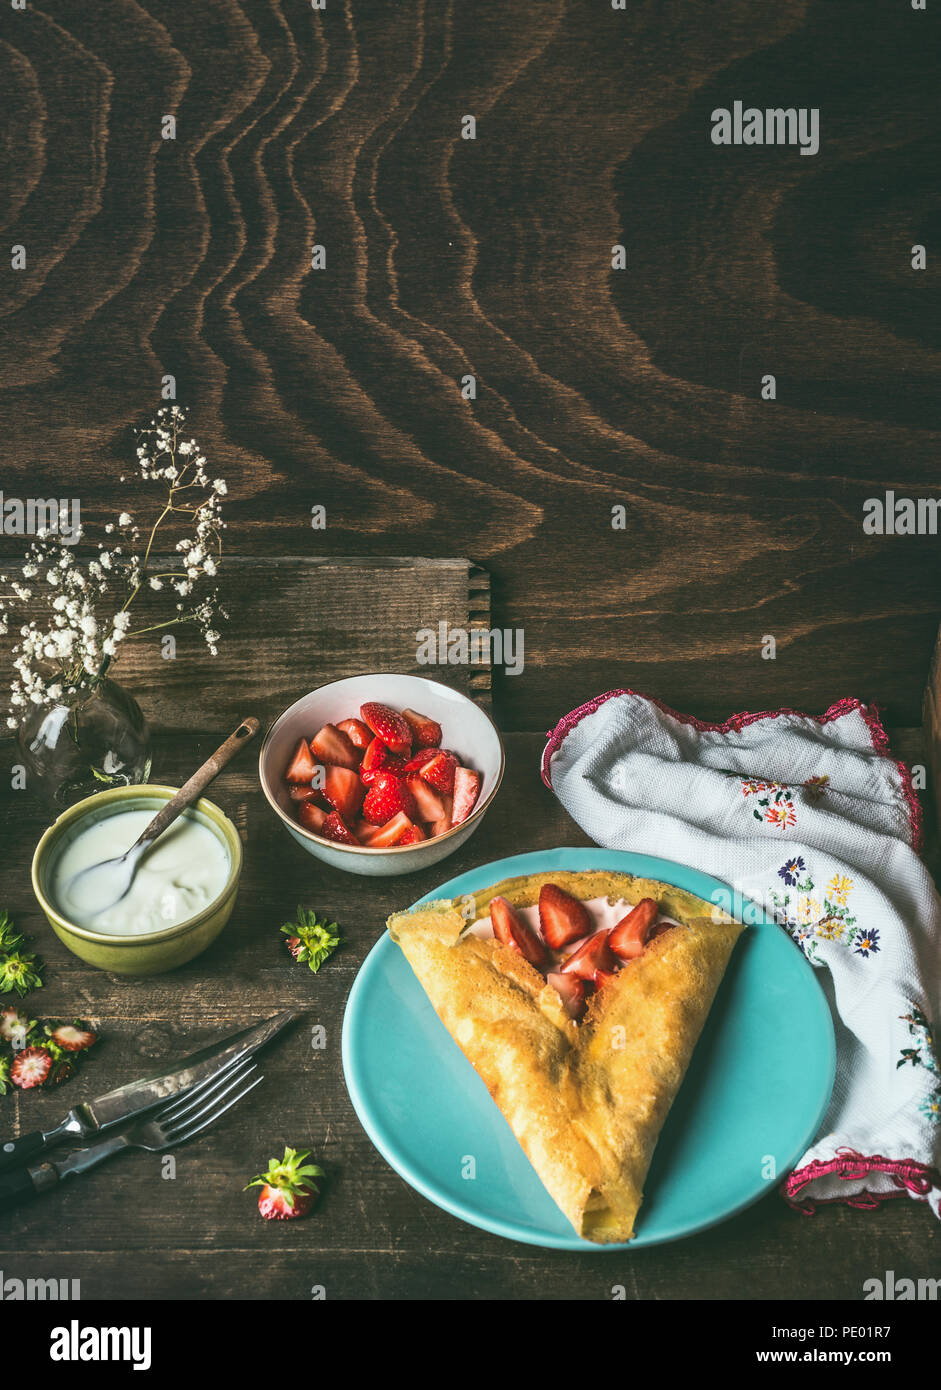 Homemade crepes on dark rustic kitchen table with strawberries and yogurt . Country style food still life - Stock Image